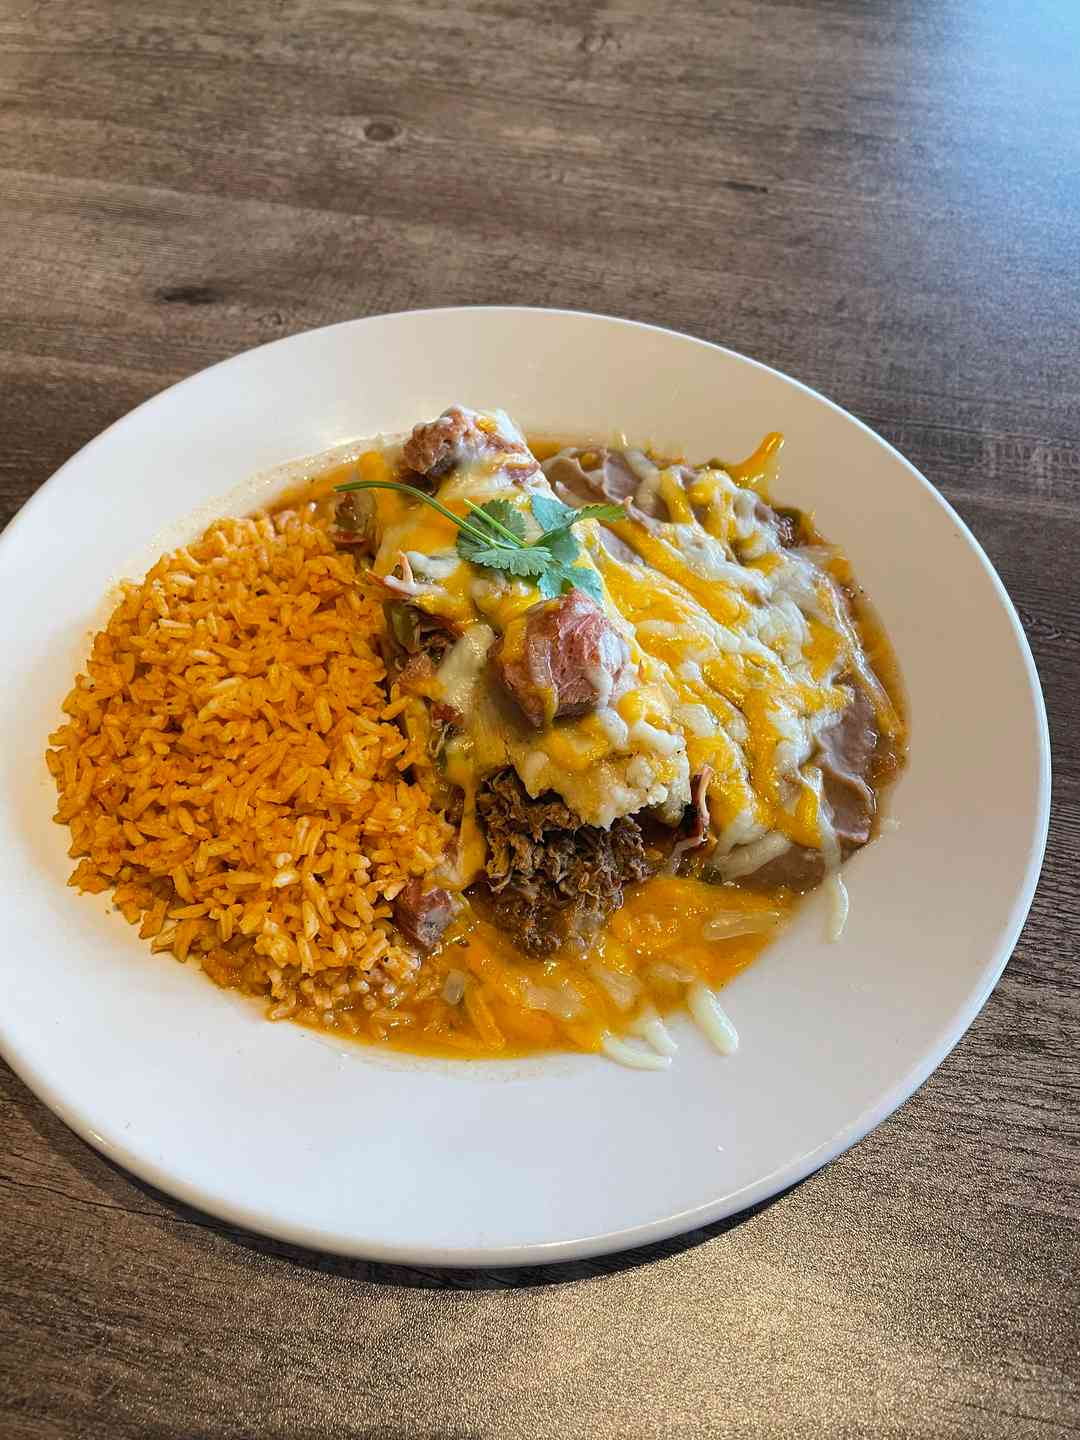 #10. Smothered Tamale